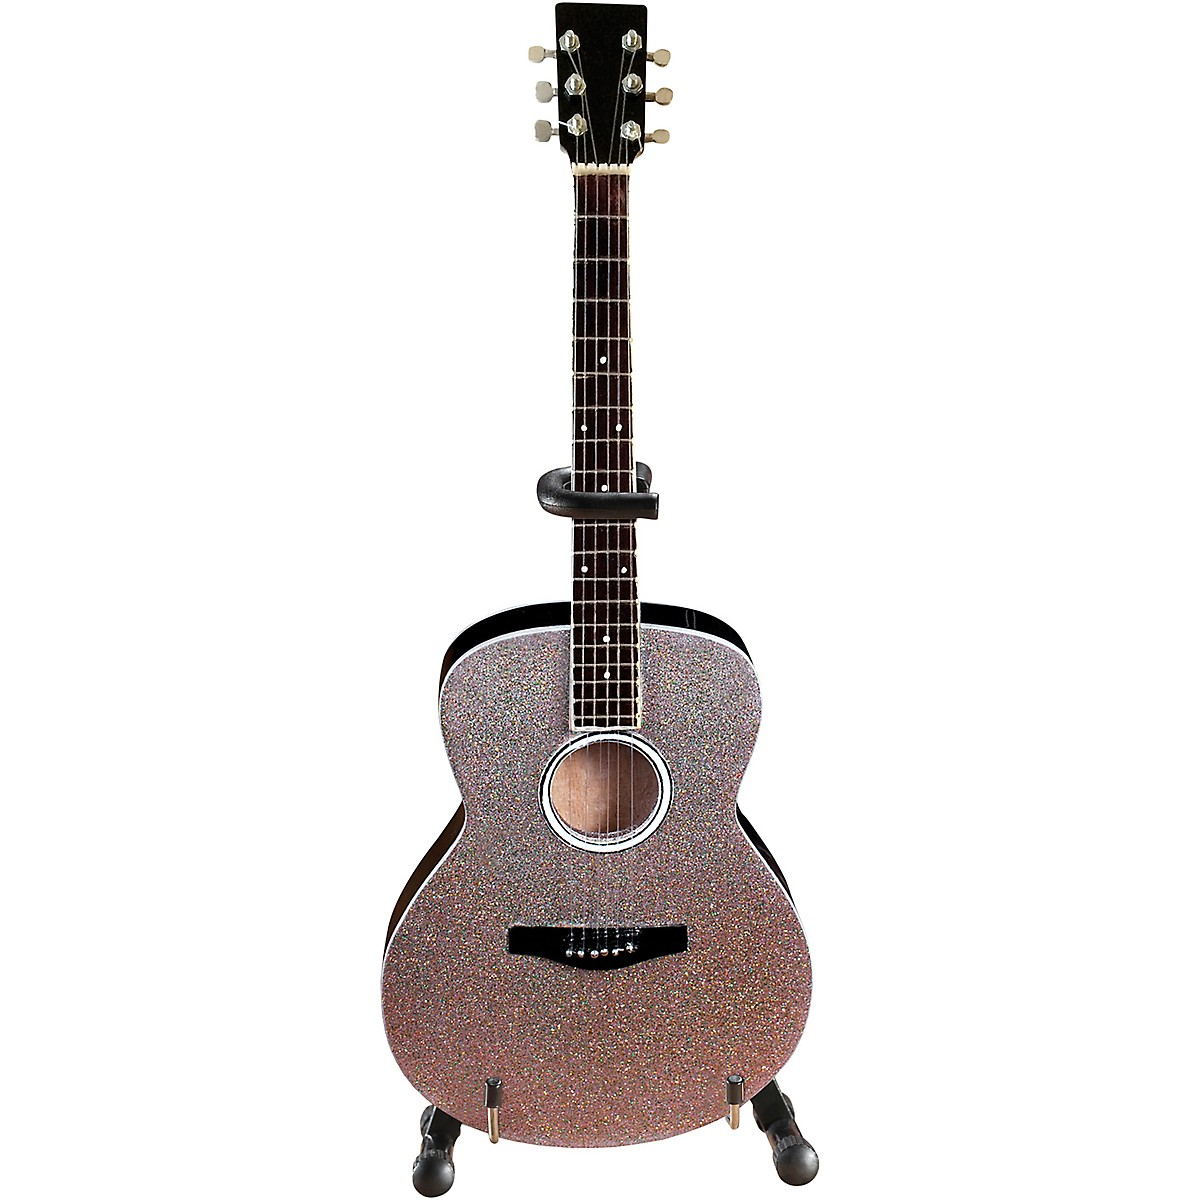 Axe Heaven Acoustic Guitar with Glitter Rhinestone Finish Officially Licensed Miniature Guitar Replica